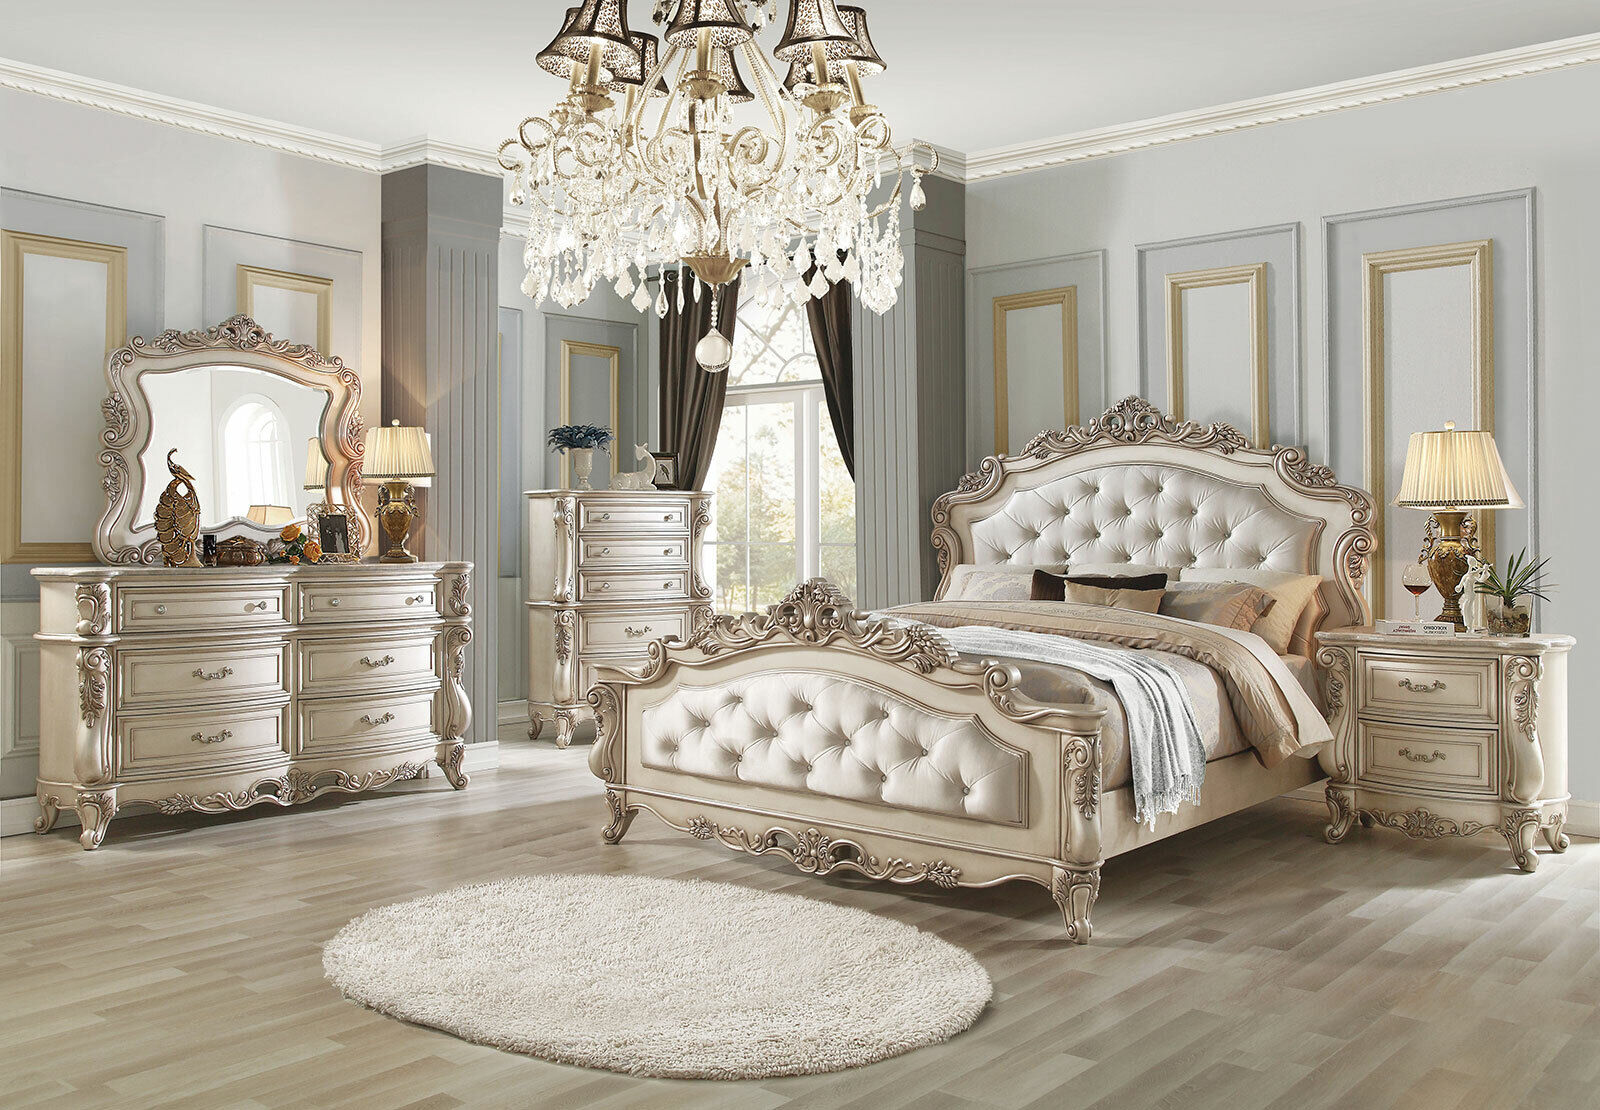 Old World Design Antique White Bedroom Furniture 5pcs King Fabric Bed Set Iaa0 For Sale Online Ebay